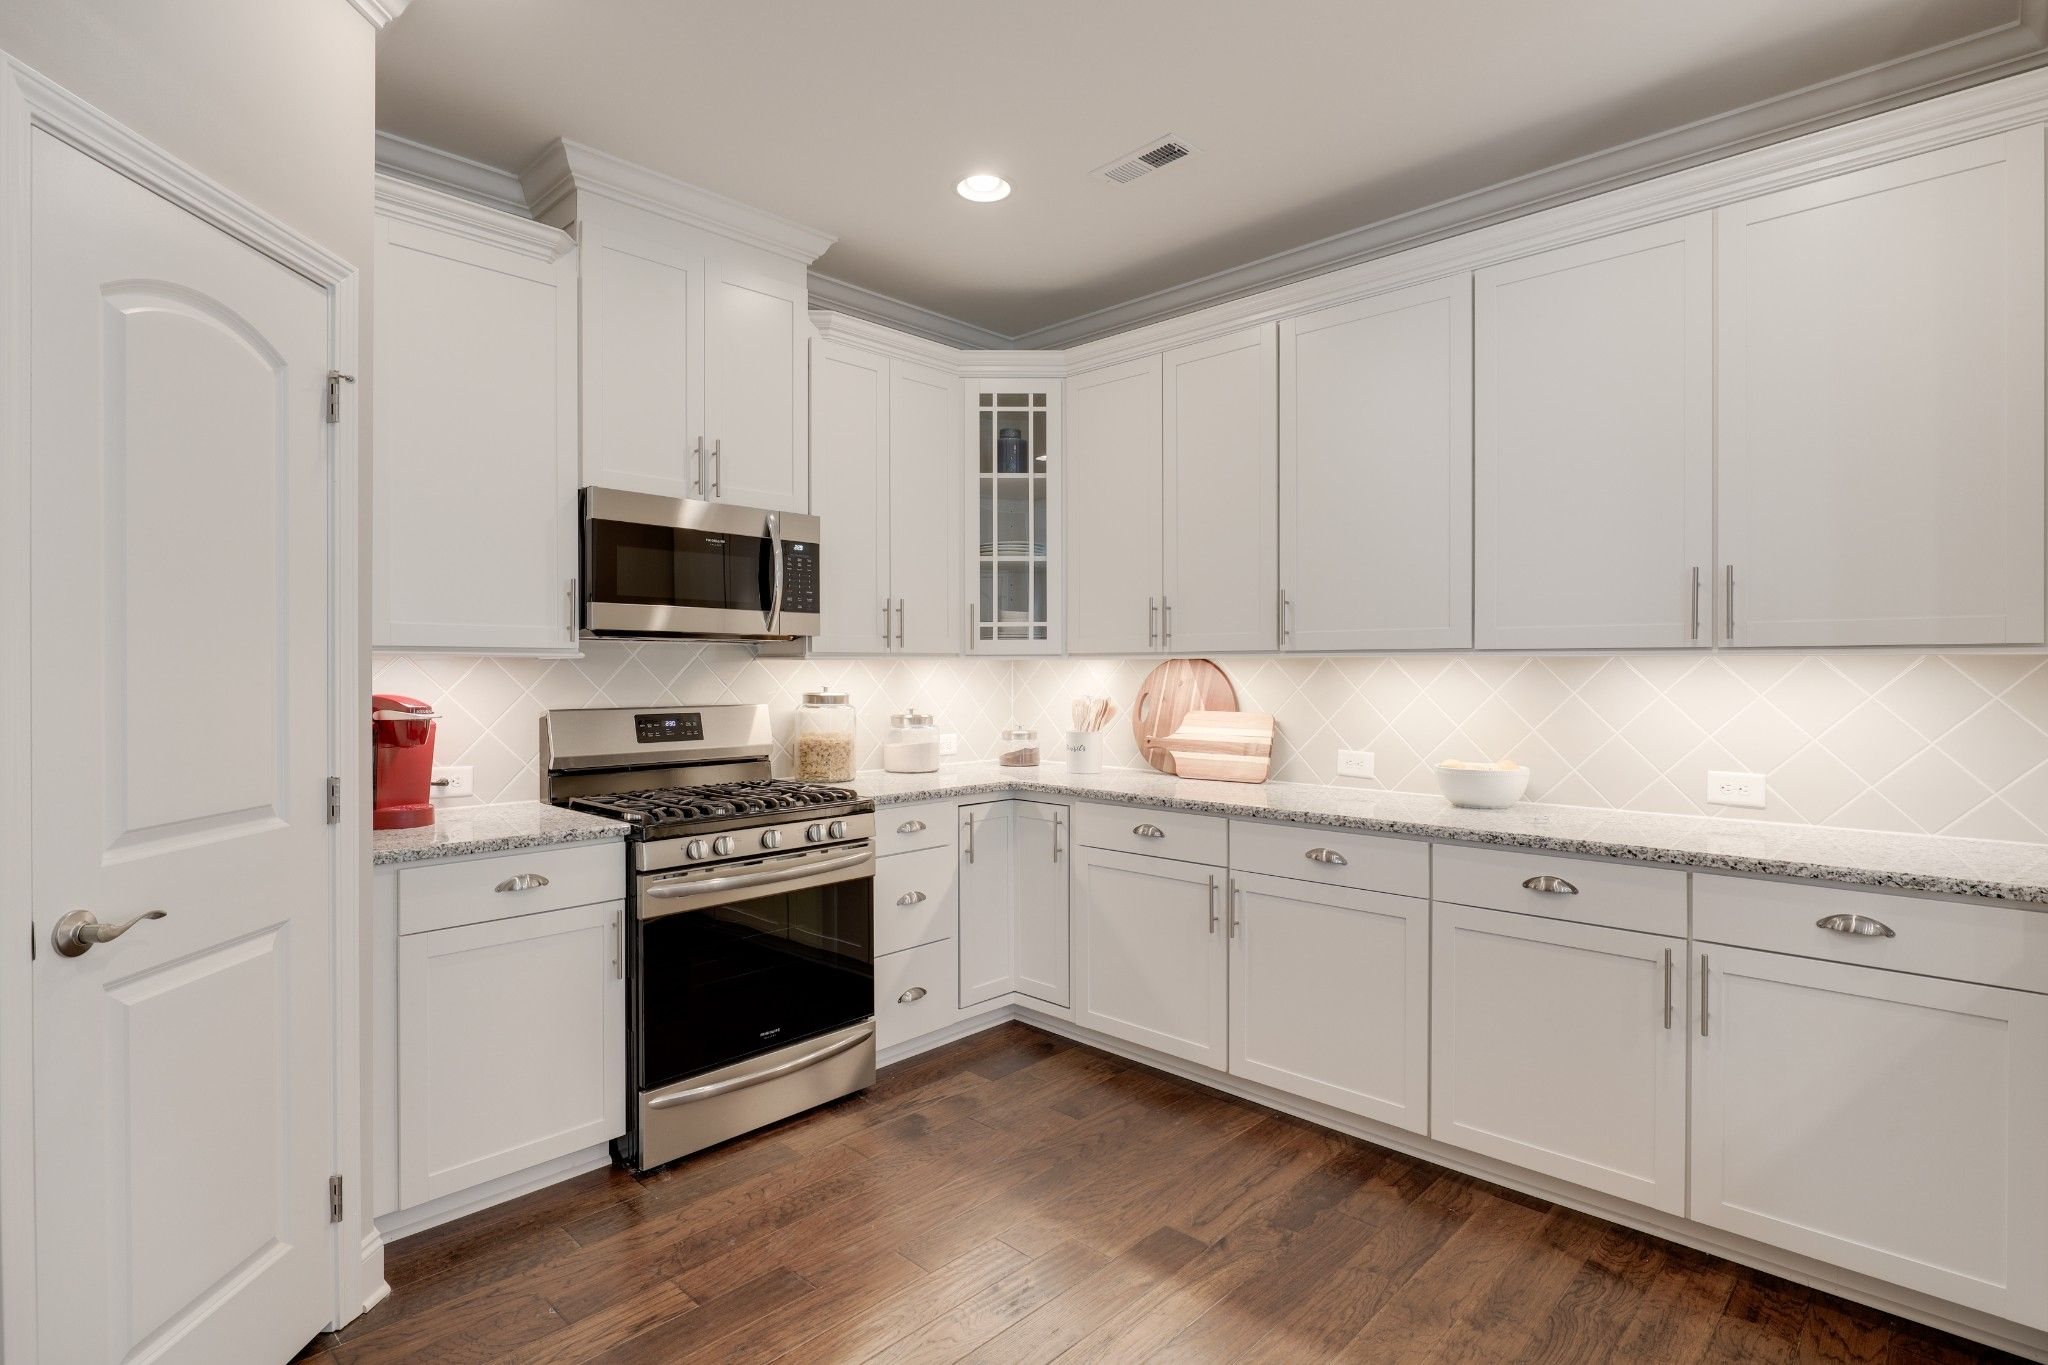 Kitchen featured in The Everleigh Courtyard Cottage By Goodall Homes in Chattanooga, GA